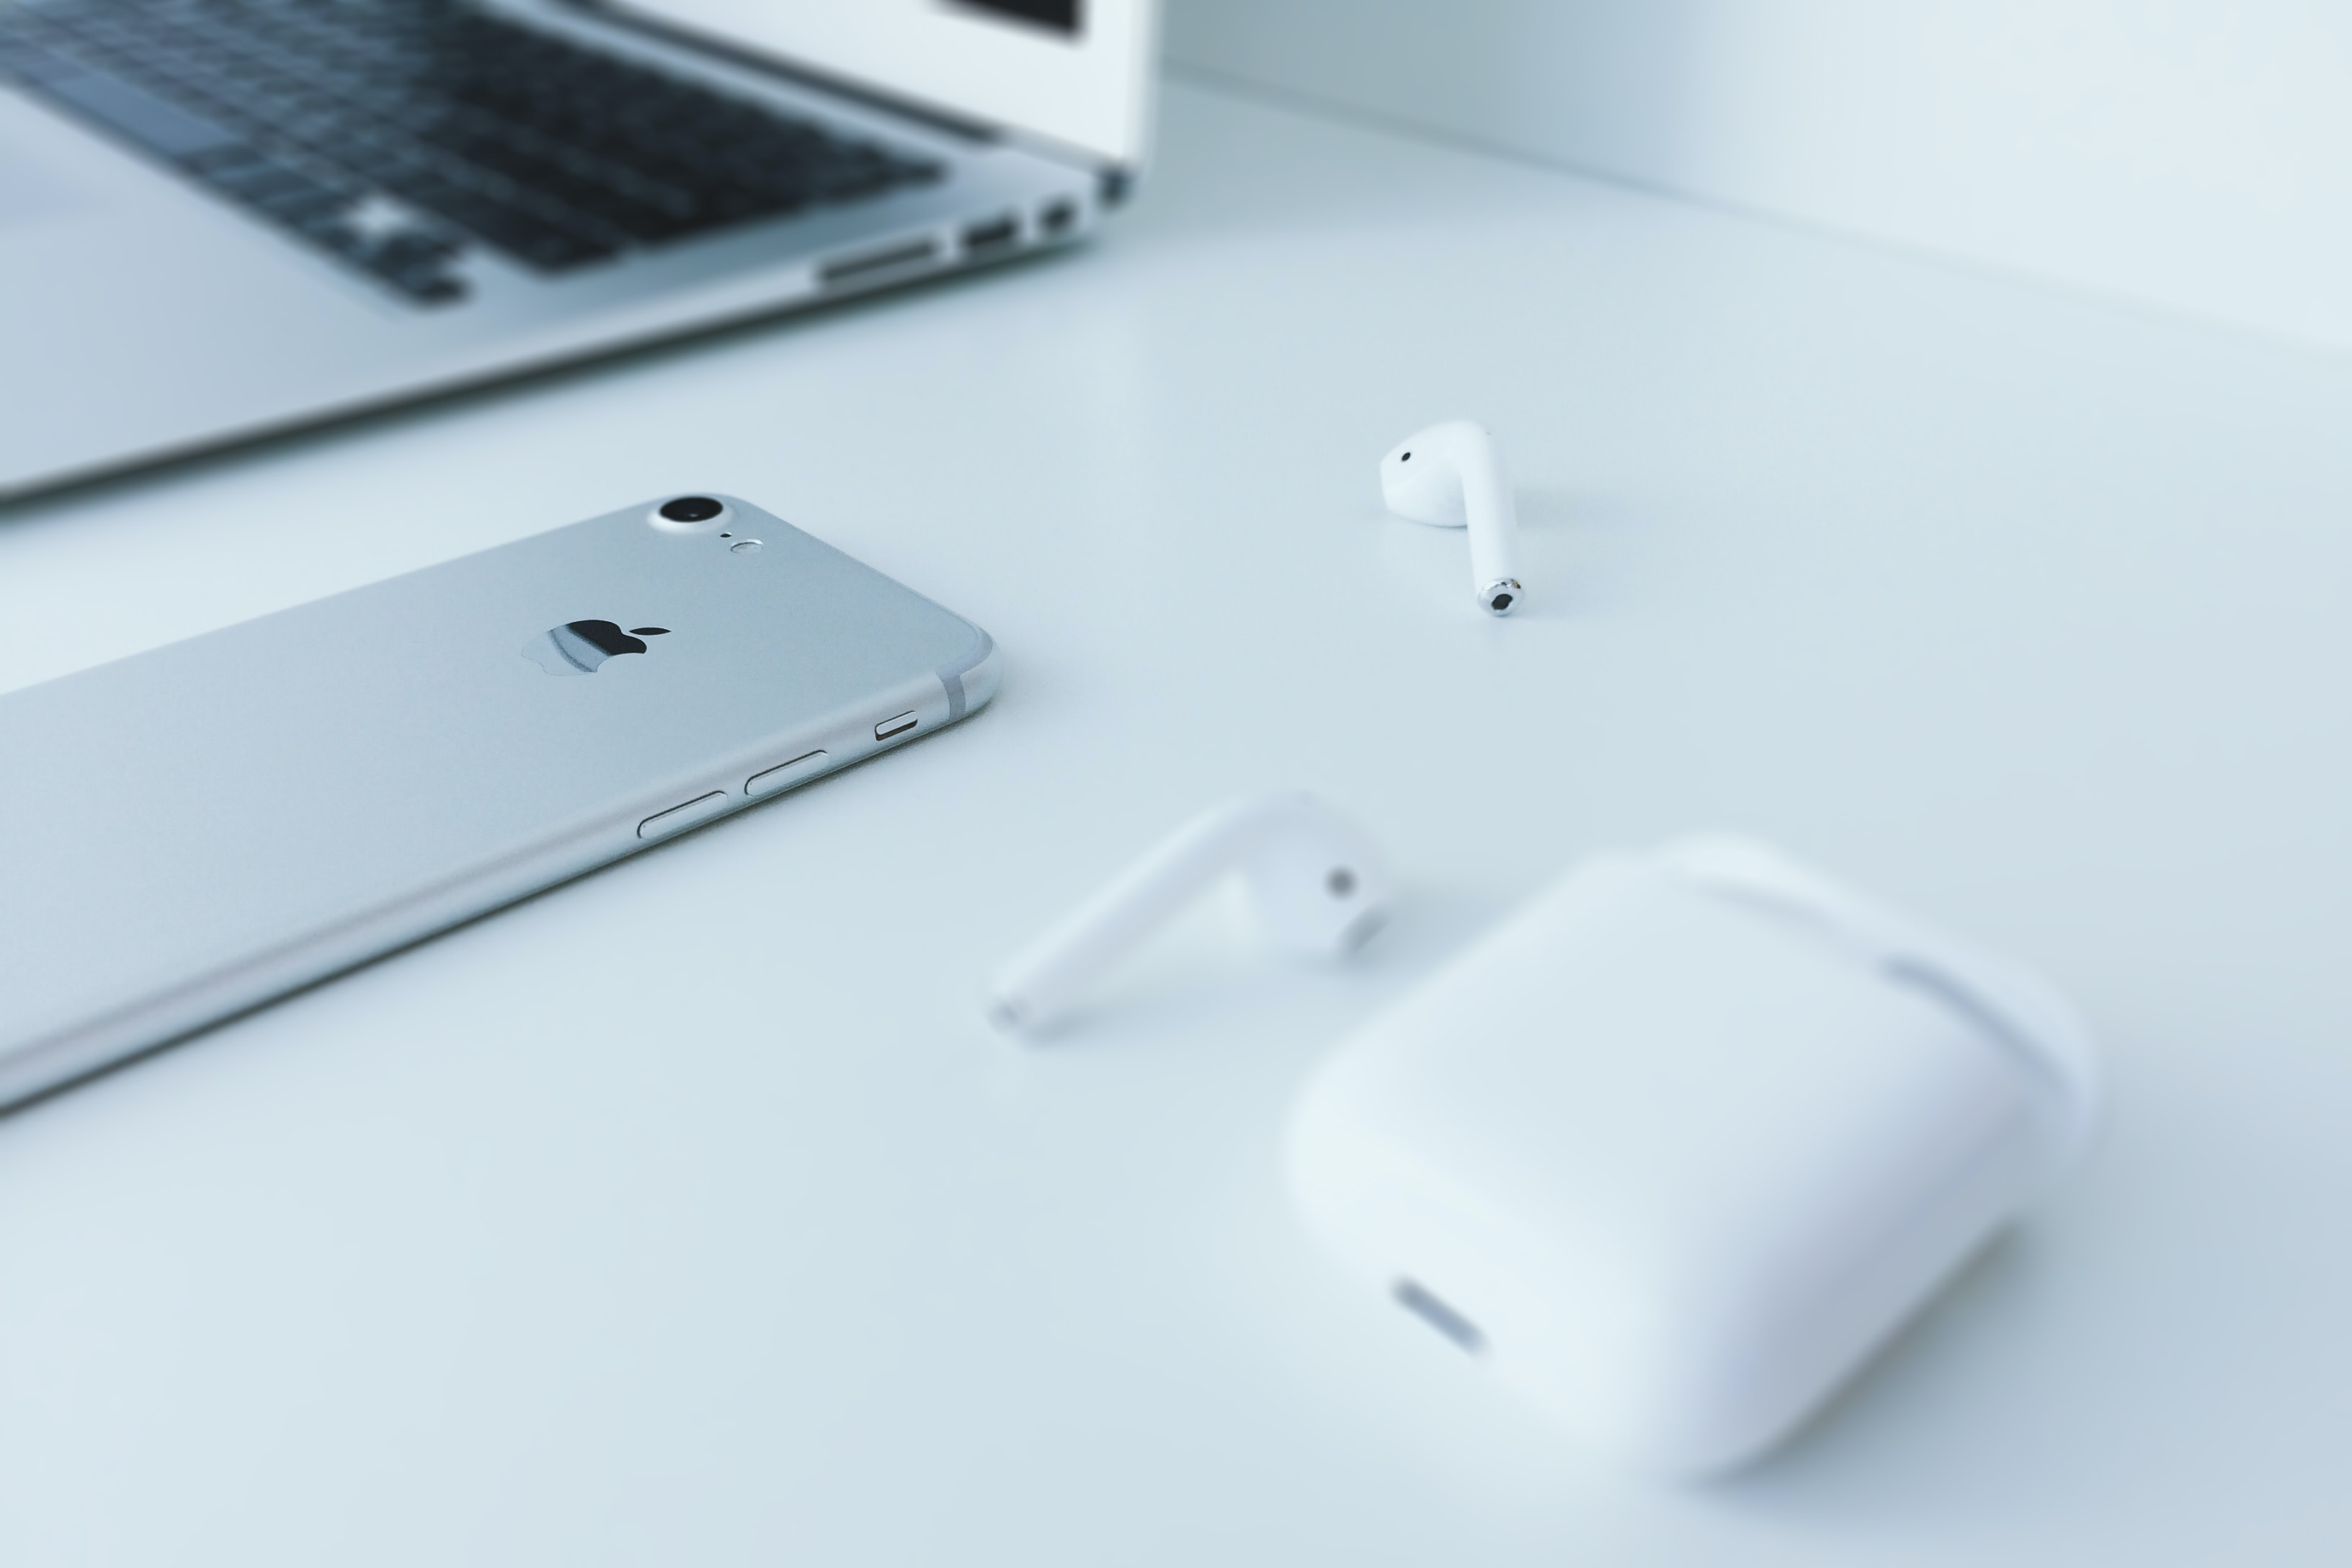 silver iPhone 7 lying on white surface near Apple AirPods